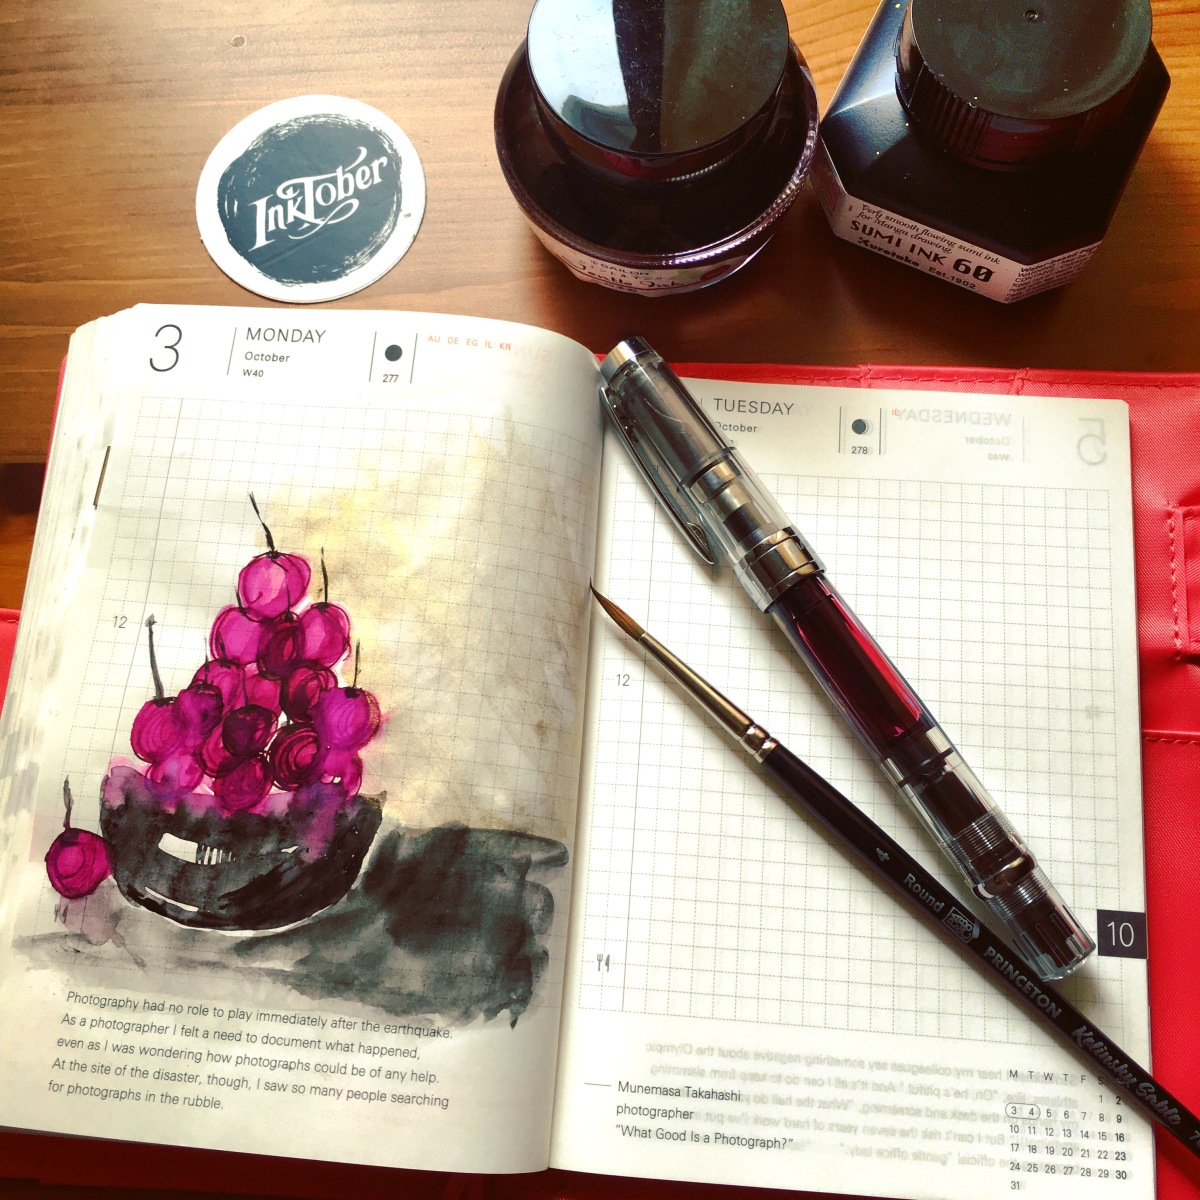 hobonichi techo fountain pen ink sketch of cherries by jessica seacrest, sailor Jentle oku-yama, zig sumi ink, gold, inktober, twsbi diamond 580 fountain pen